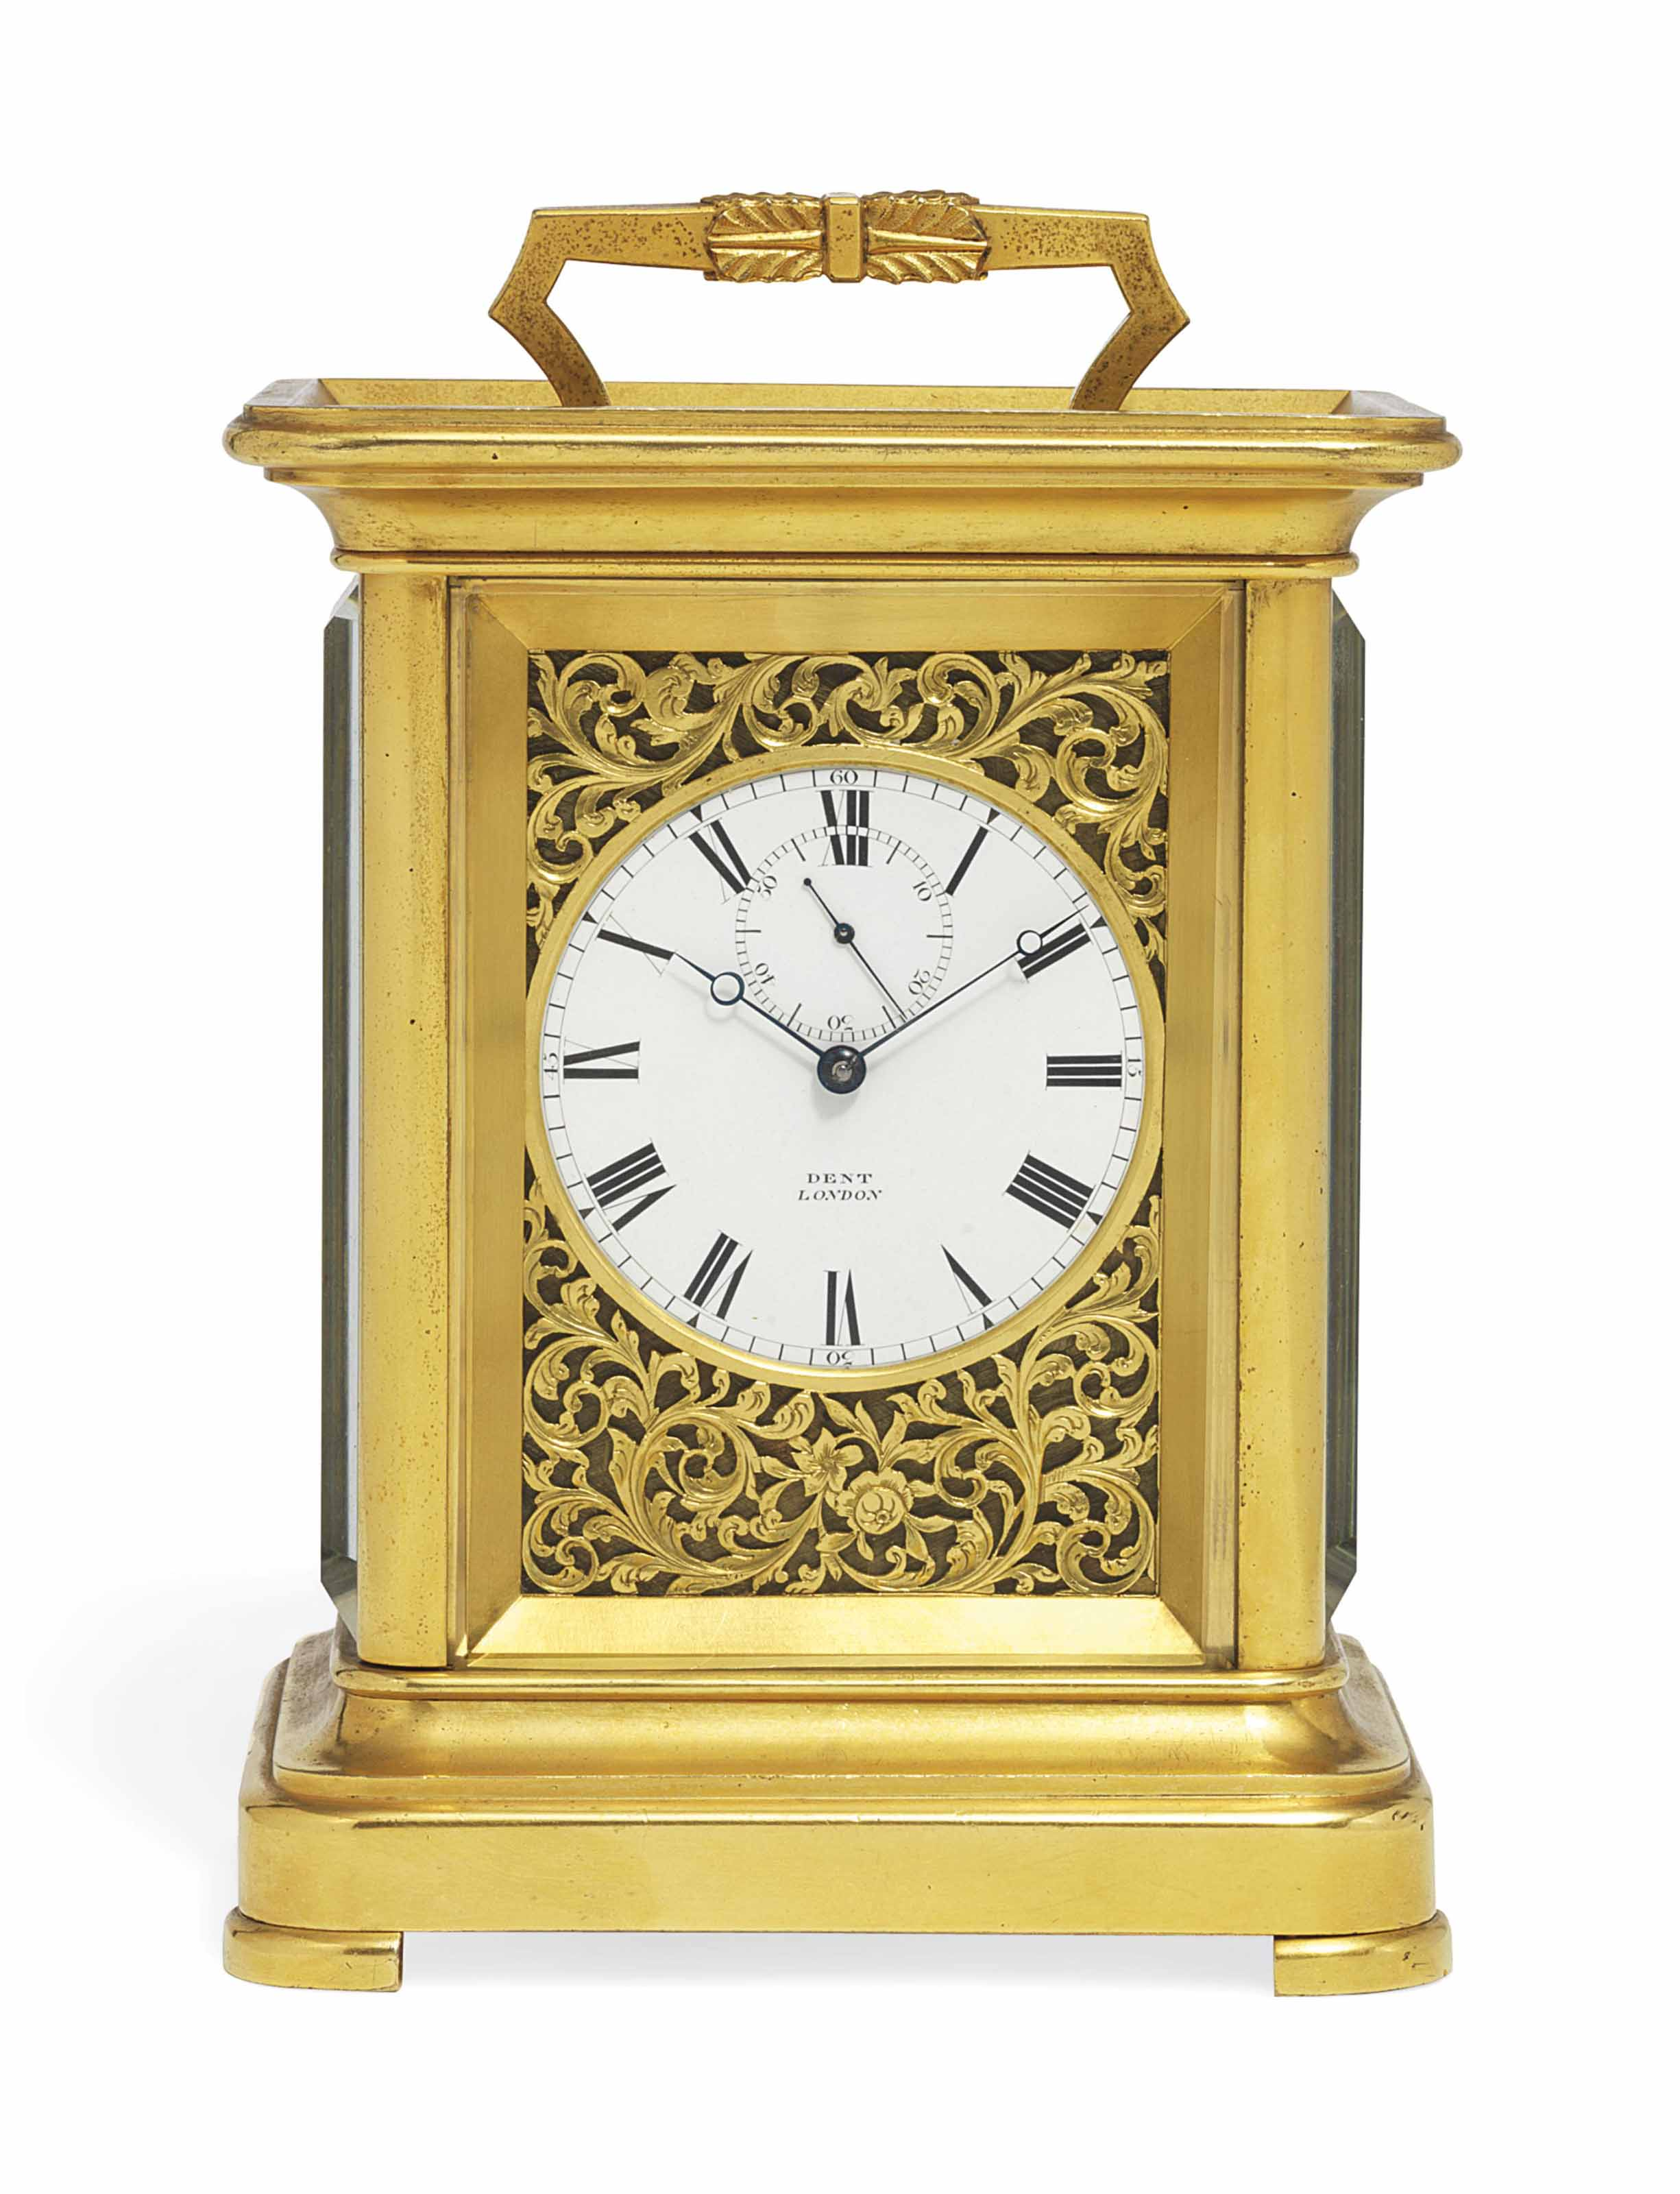 A VICTORIAN GILT-BRASS EIGHT-DAY CHRONOMETER CARRIAGE TIMEPIECE